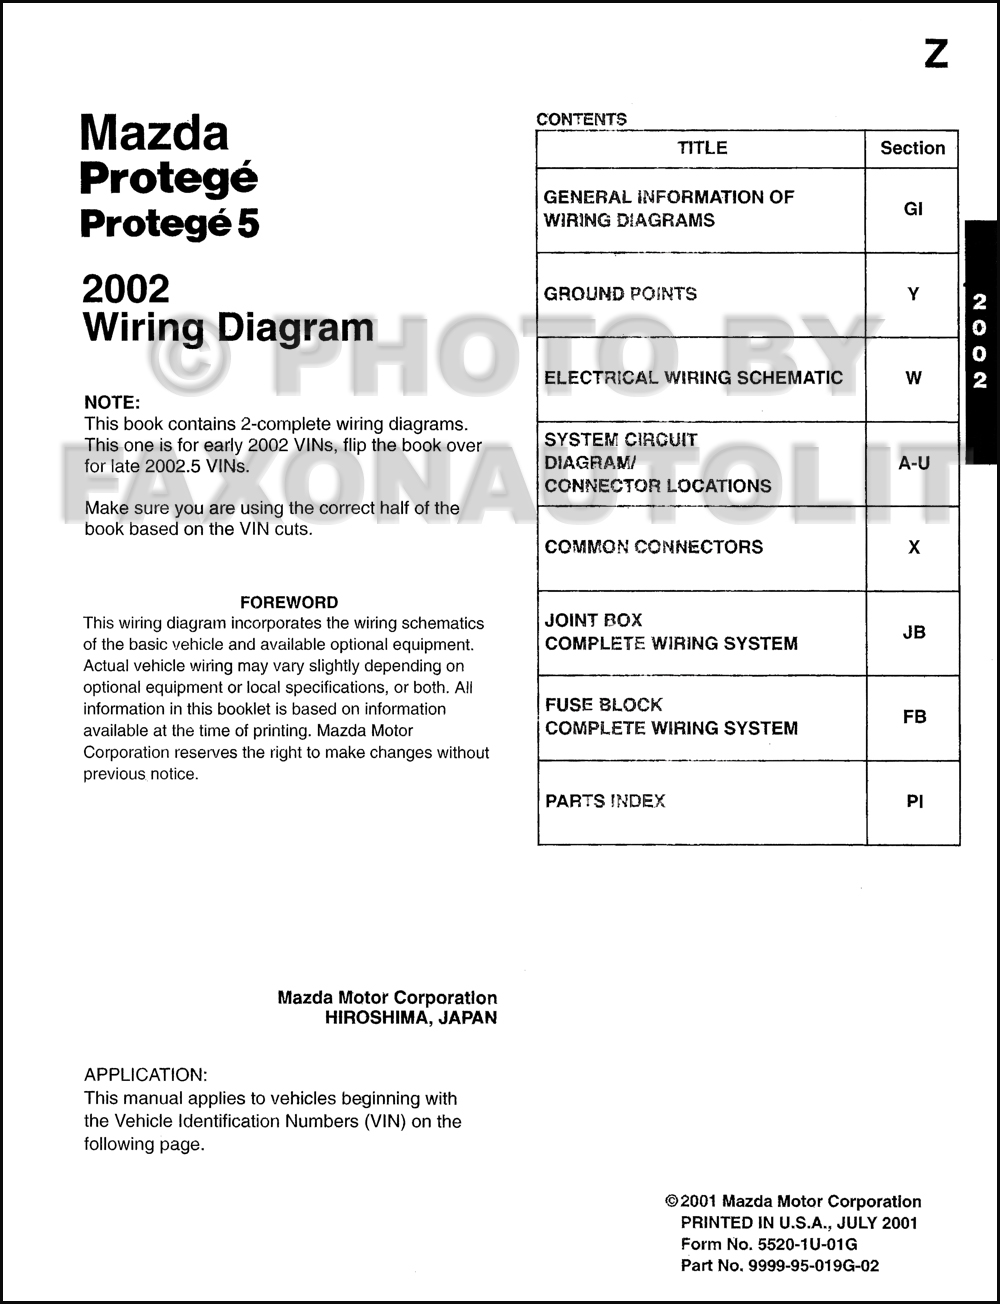 2002 20025 Mazda Protege Wiring Diagram Manual Original Fuse Table Of Contents